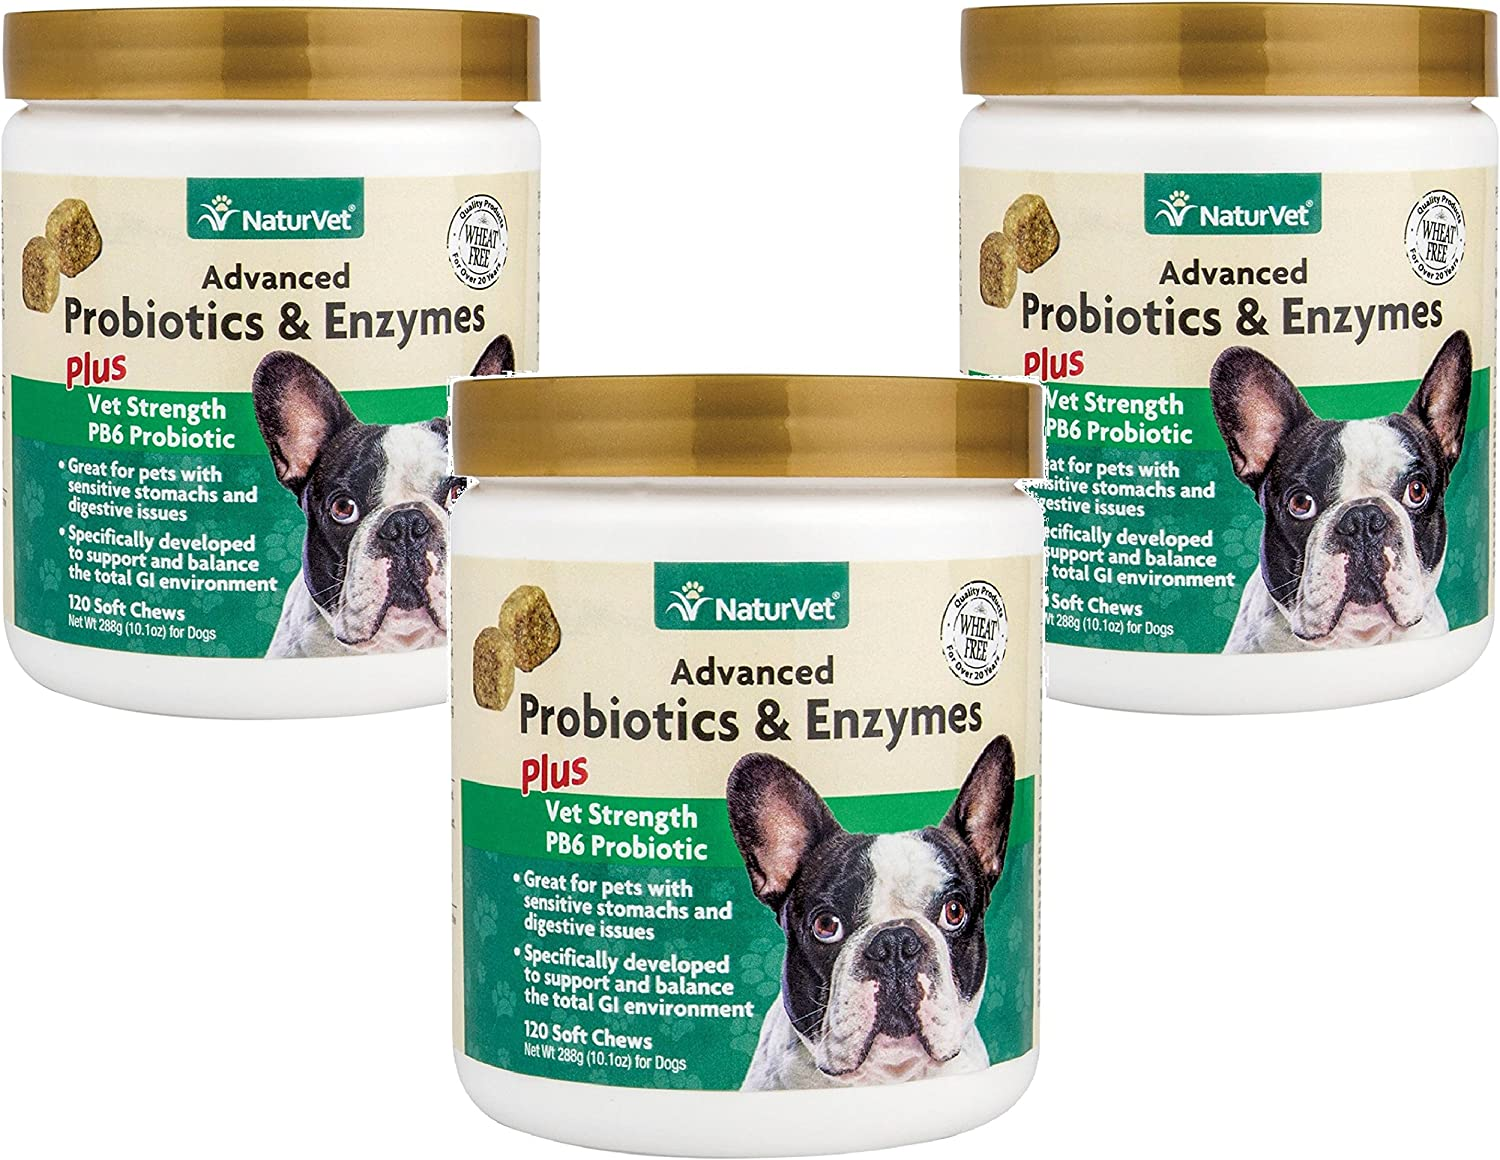 360-Count NaturVet Advanced Probiotics Enzymes Plus Vet Strength PB6 Probiotic Soft Chews for Dogs 3 Jars with 120 Chews Each